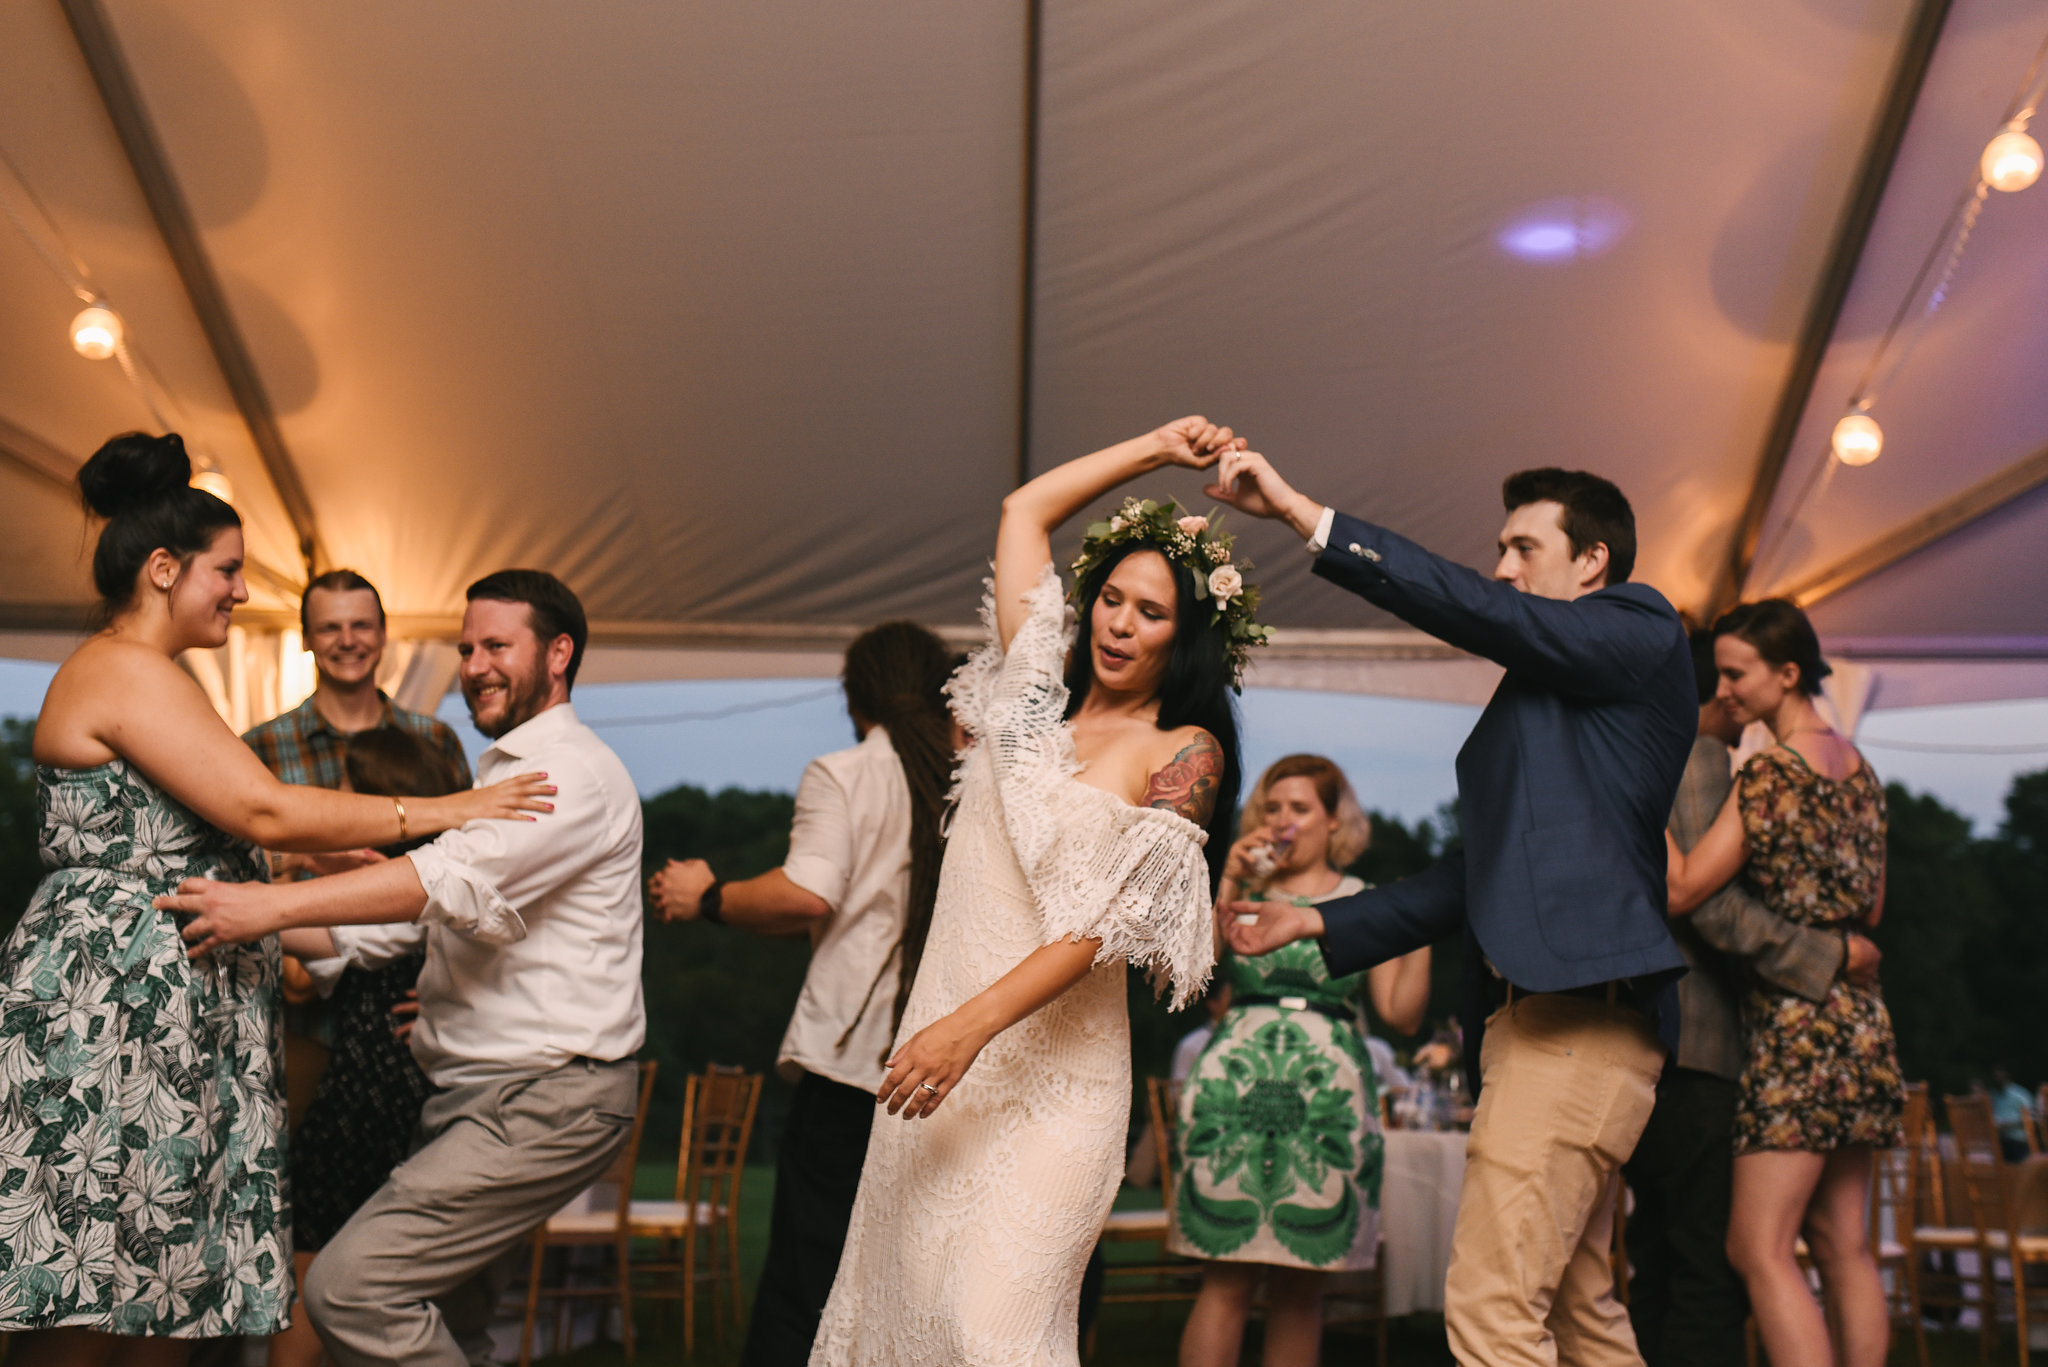 Maryland, Eastern Shore, Baltimore Wedding Photographer, Romantic, Boho, Backyard Wedding, Nature, Bride and Groom Dancing at Reception, Guests Dancing, Flower Crown